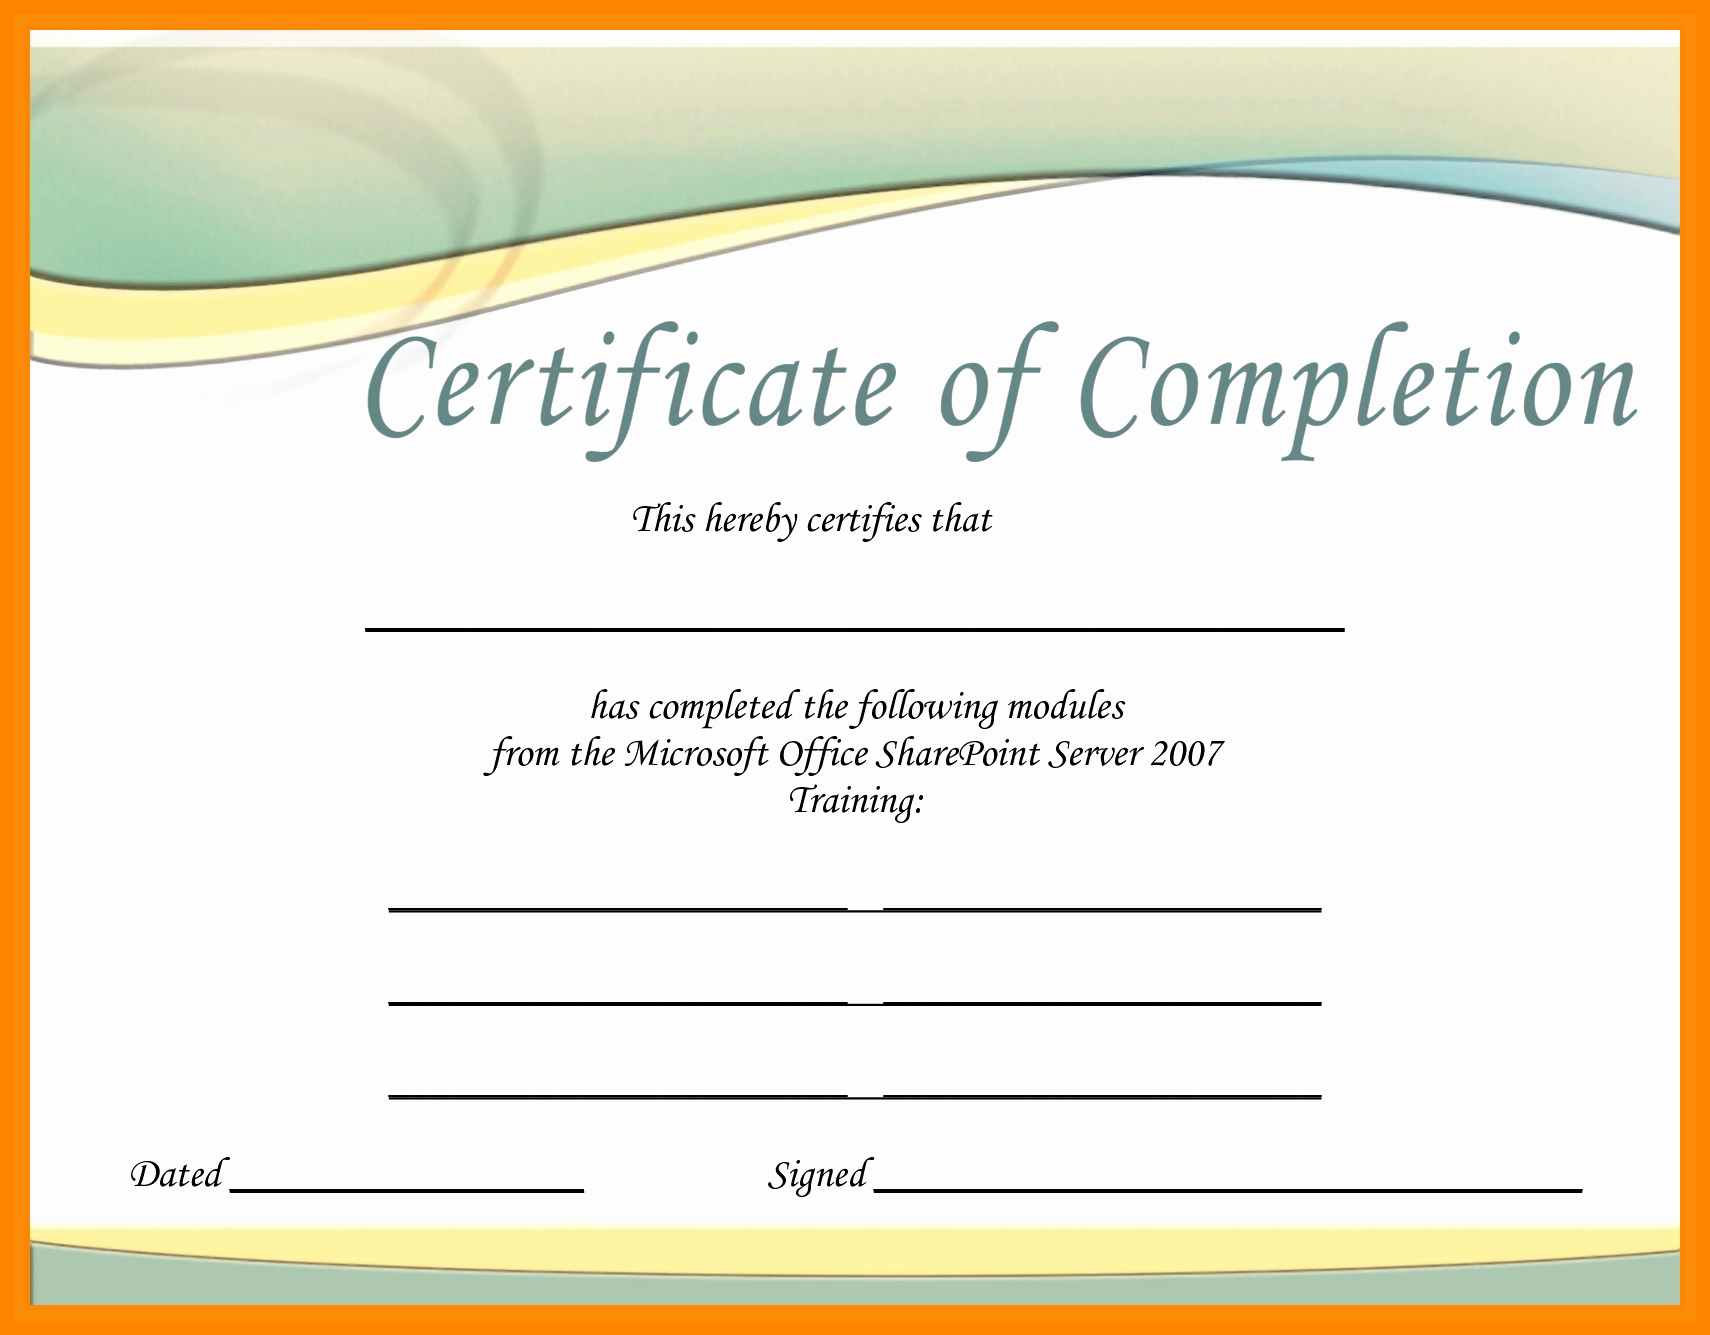 Microsoft Word Certificate Template Free Beautiful Downloadable Certificate Templates for Microsoft Word